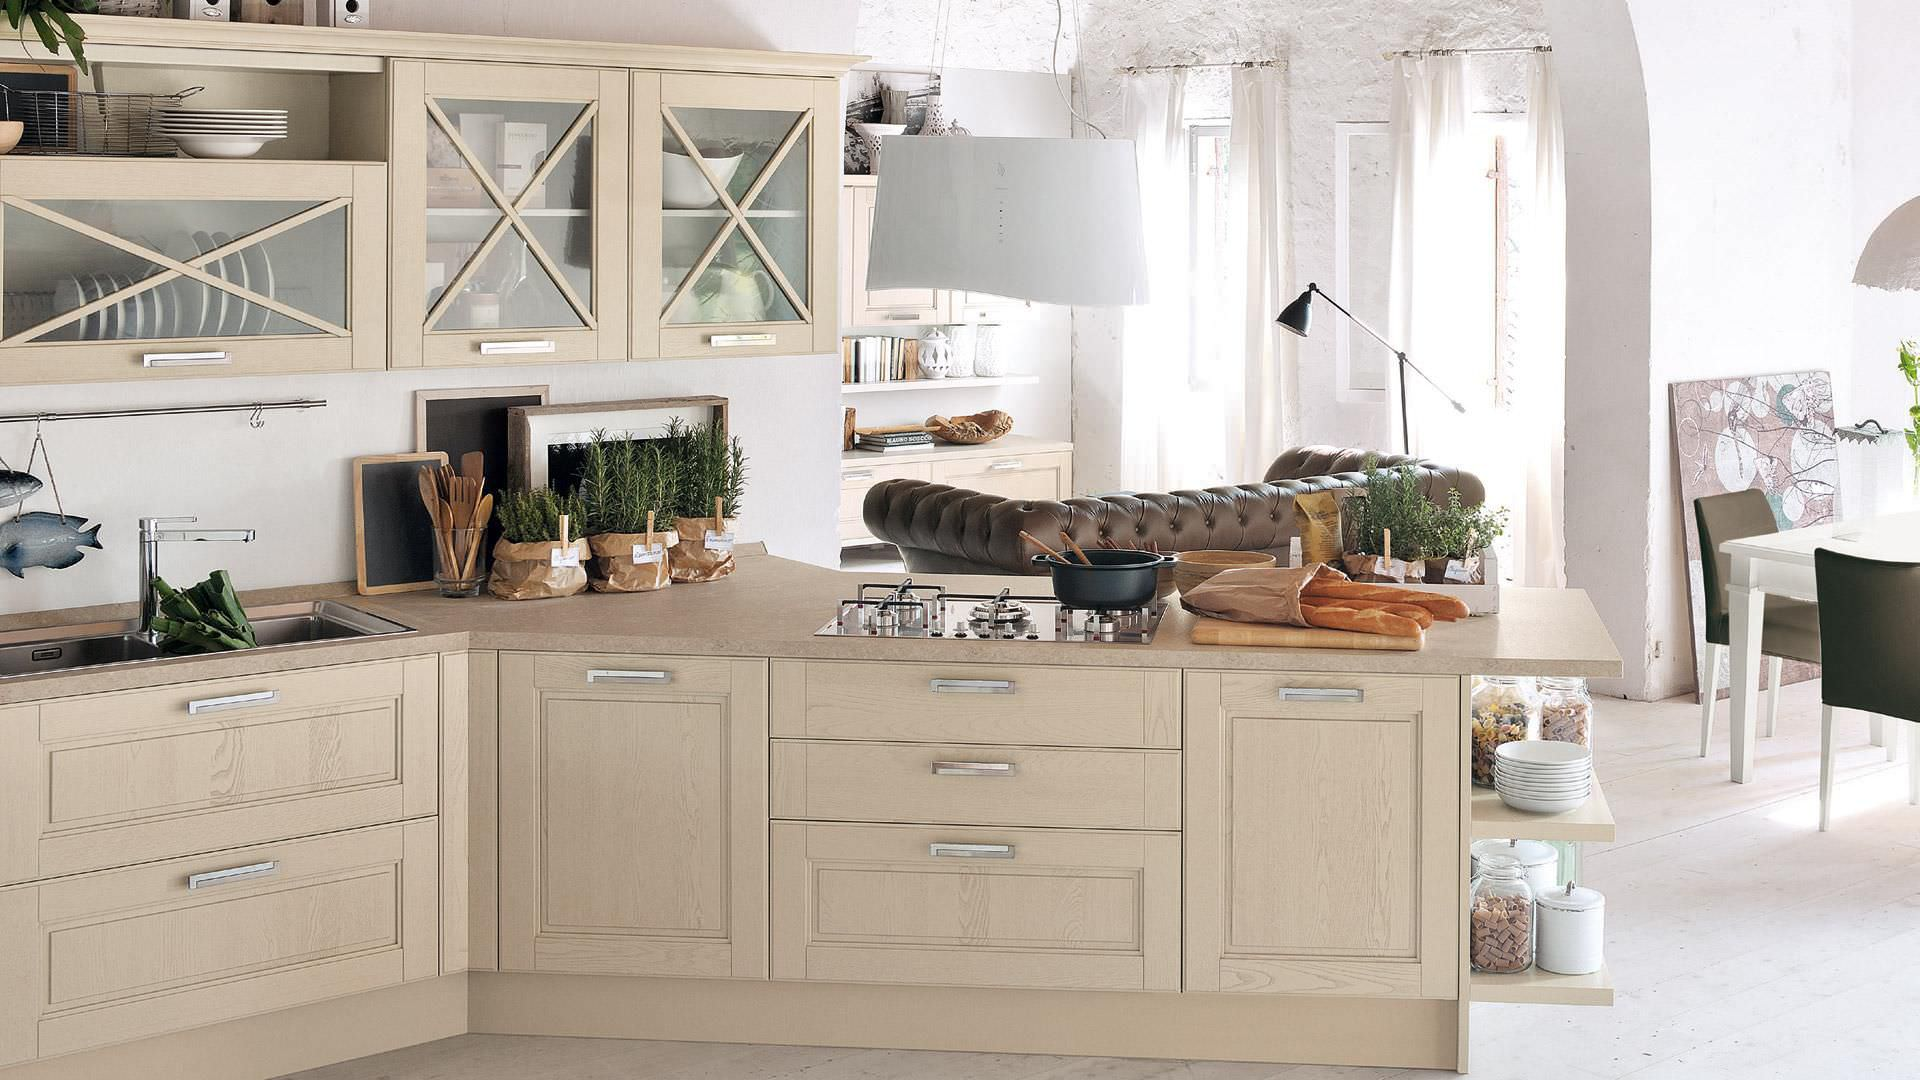 Piastrelle cucina shabby awesome piastrelle cucina country